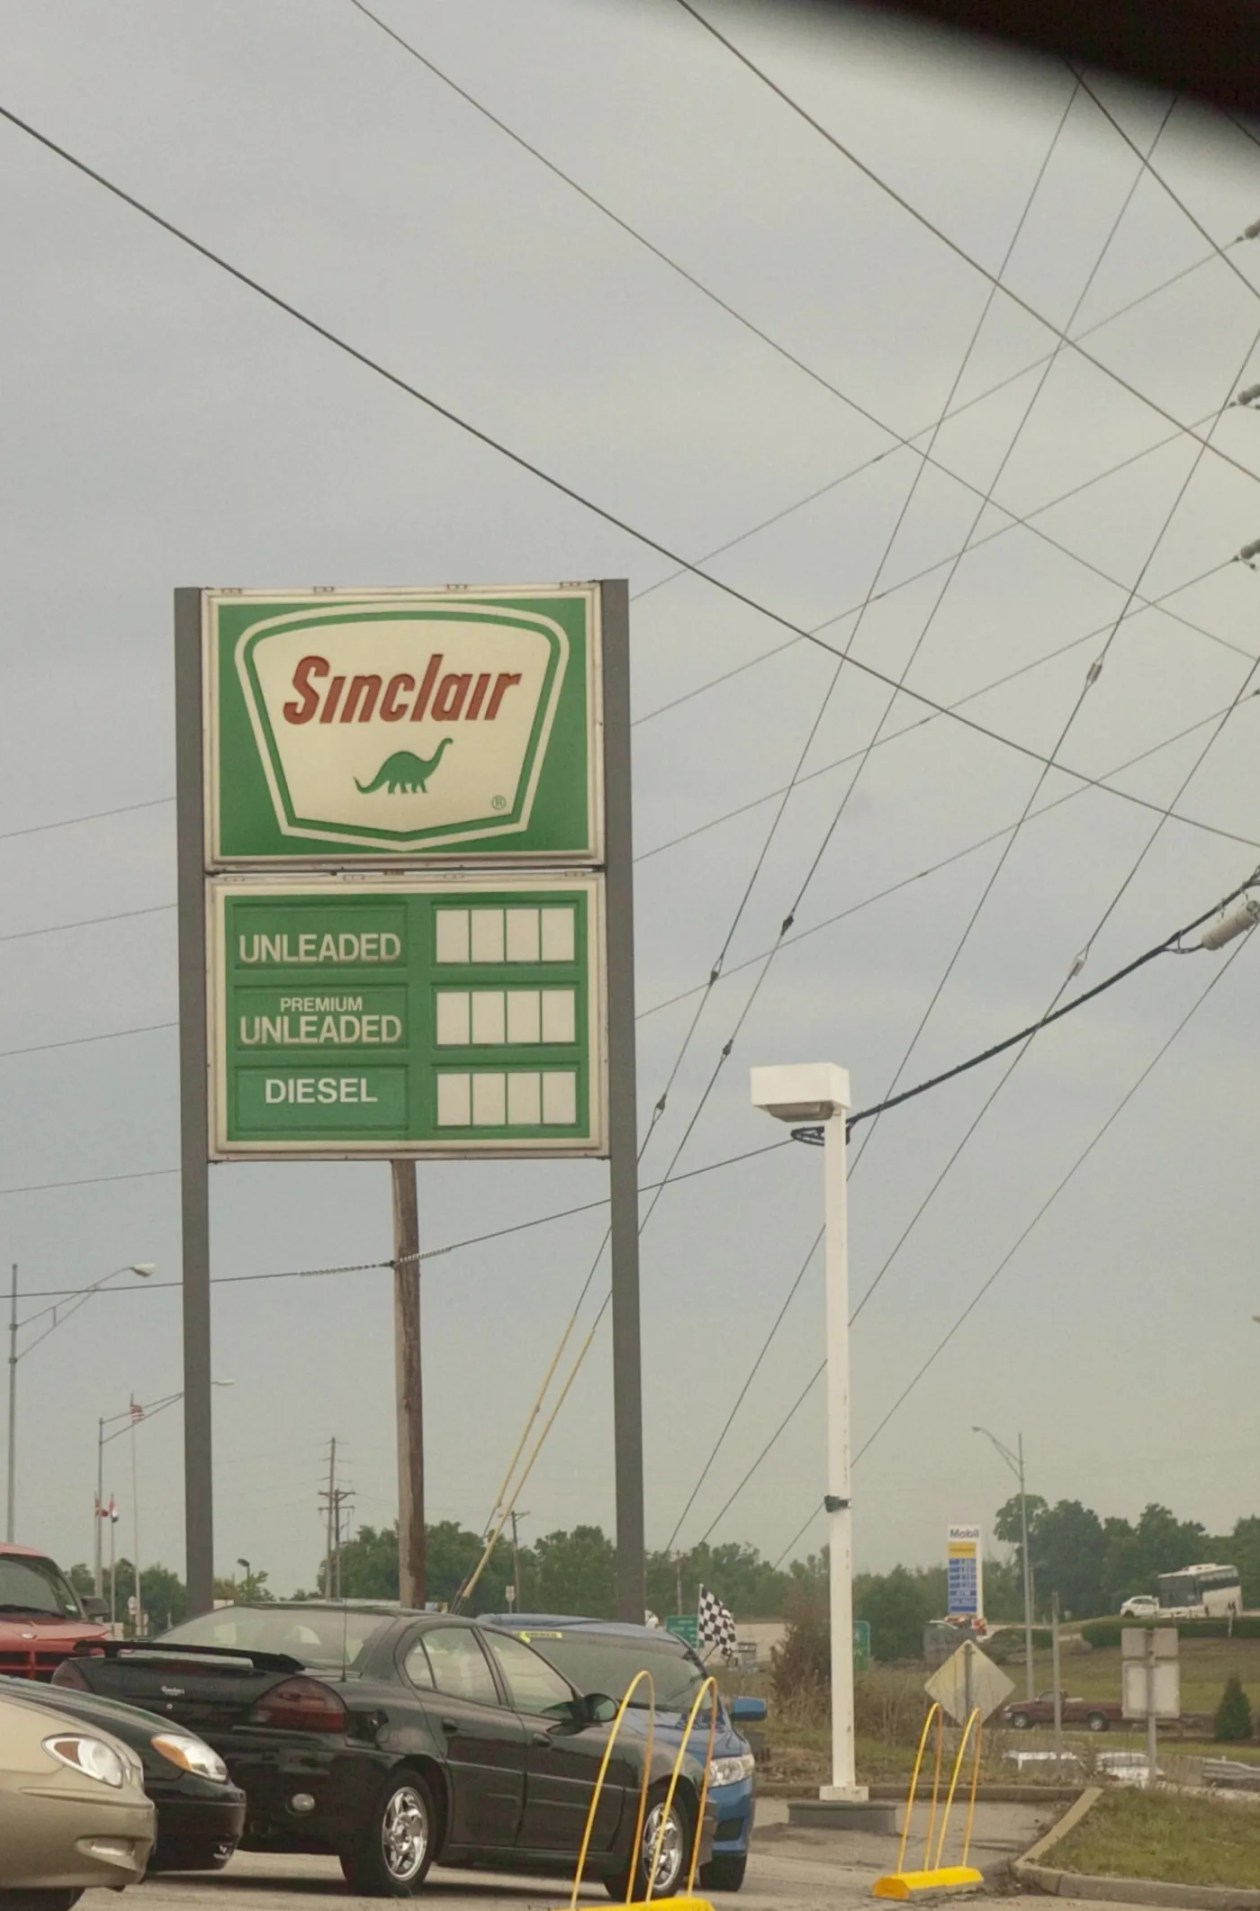 Sinclair gas station turned into a used car dealership in Missouri